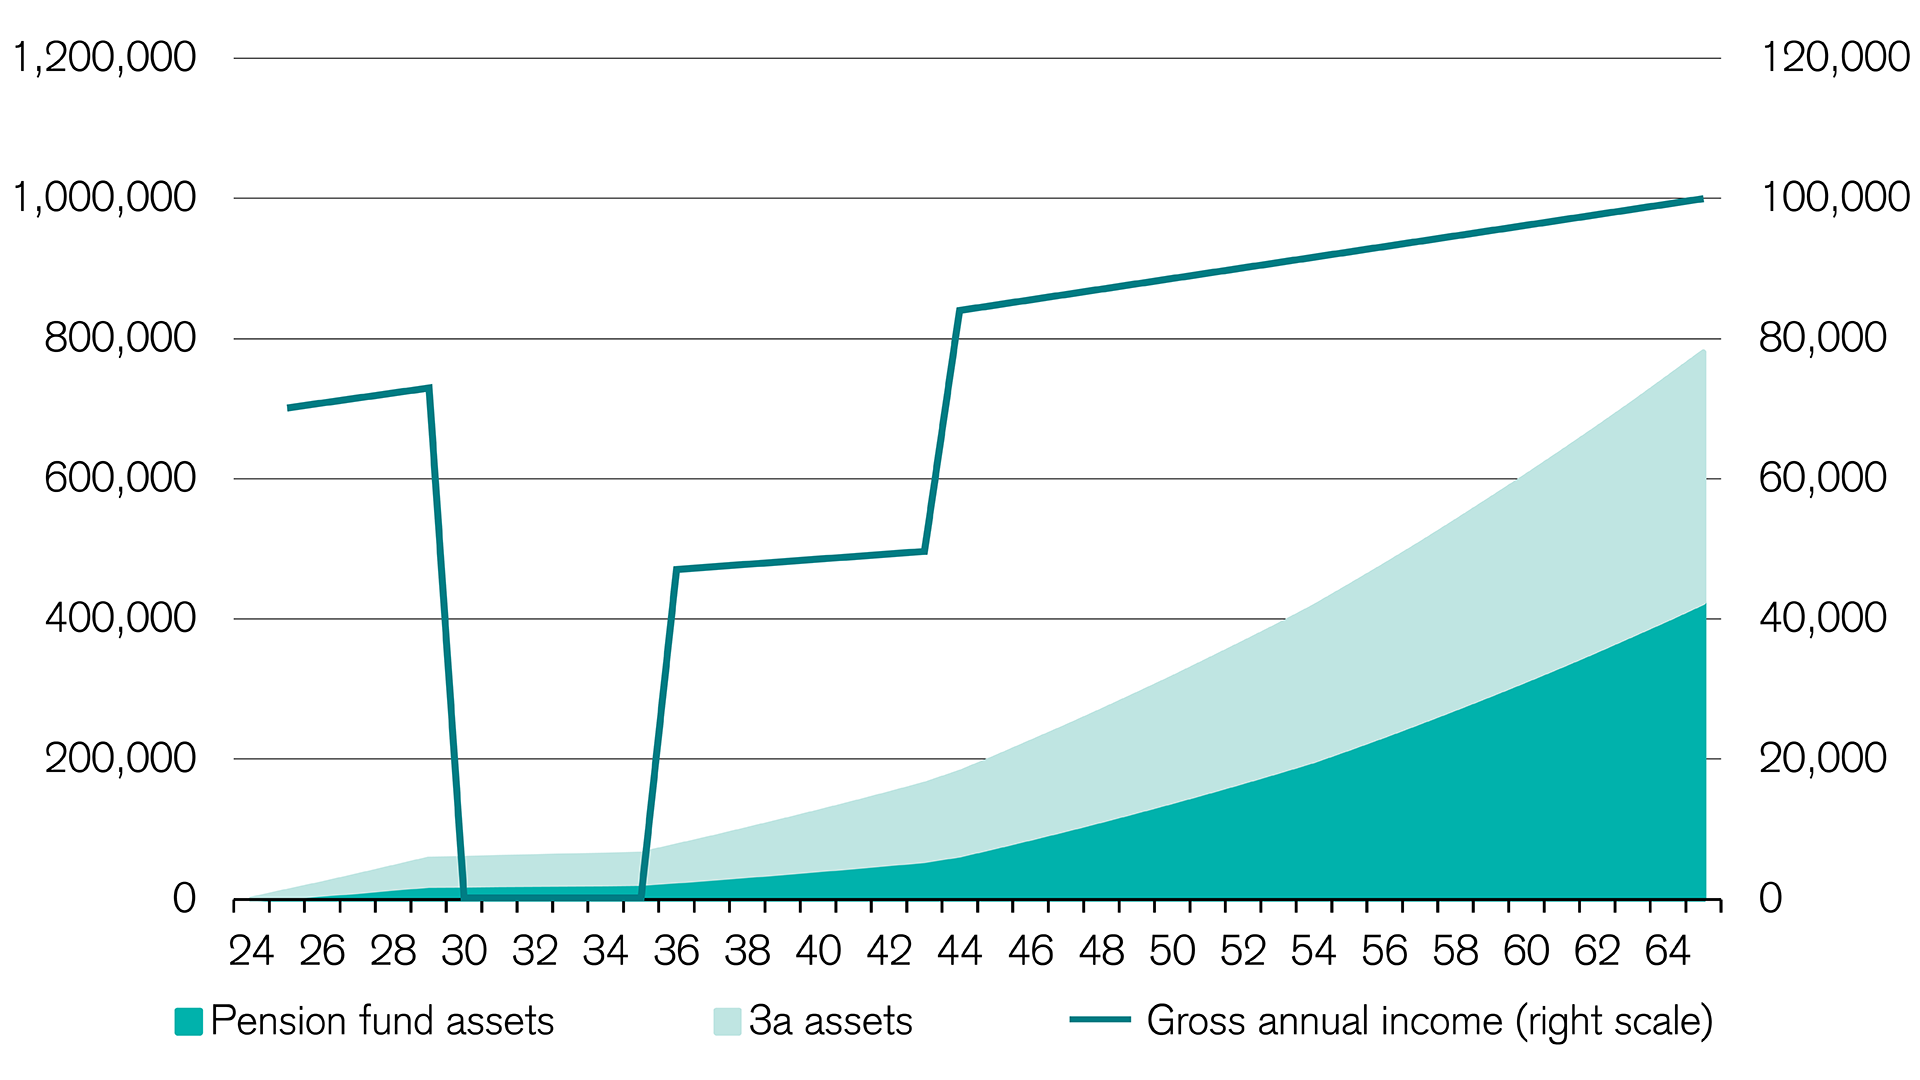 Impact of career break and part-time work on Pillar 3a and pension fund